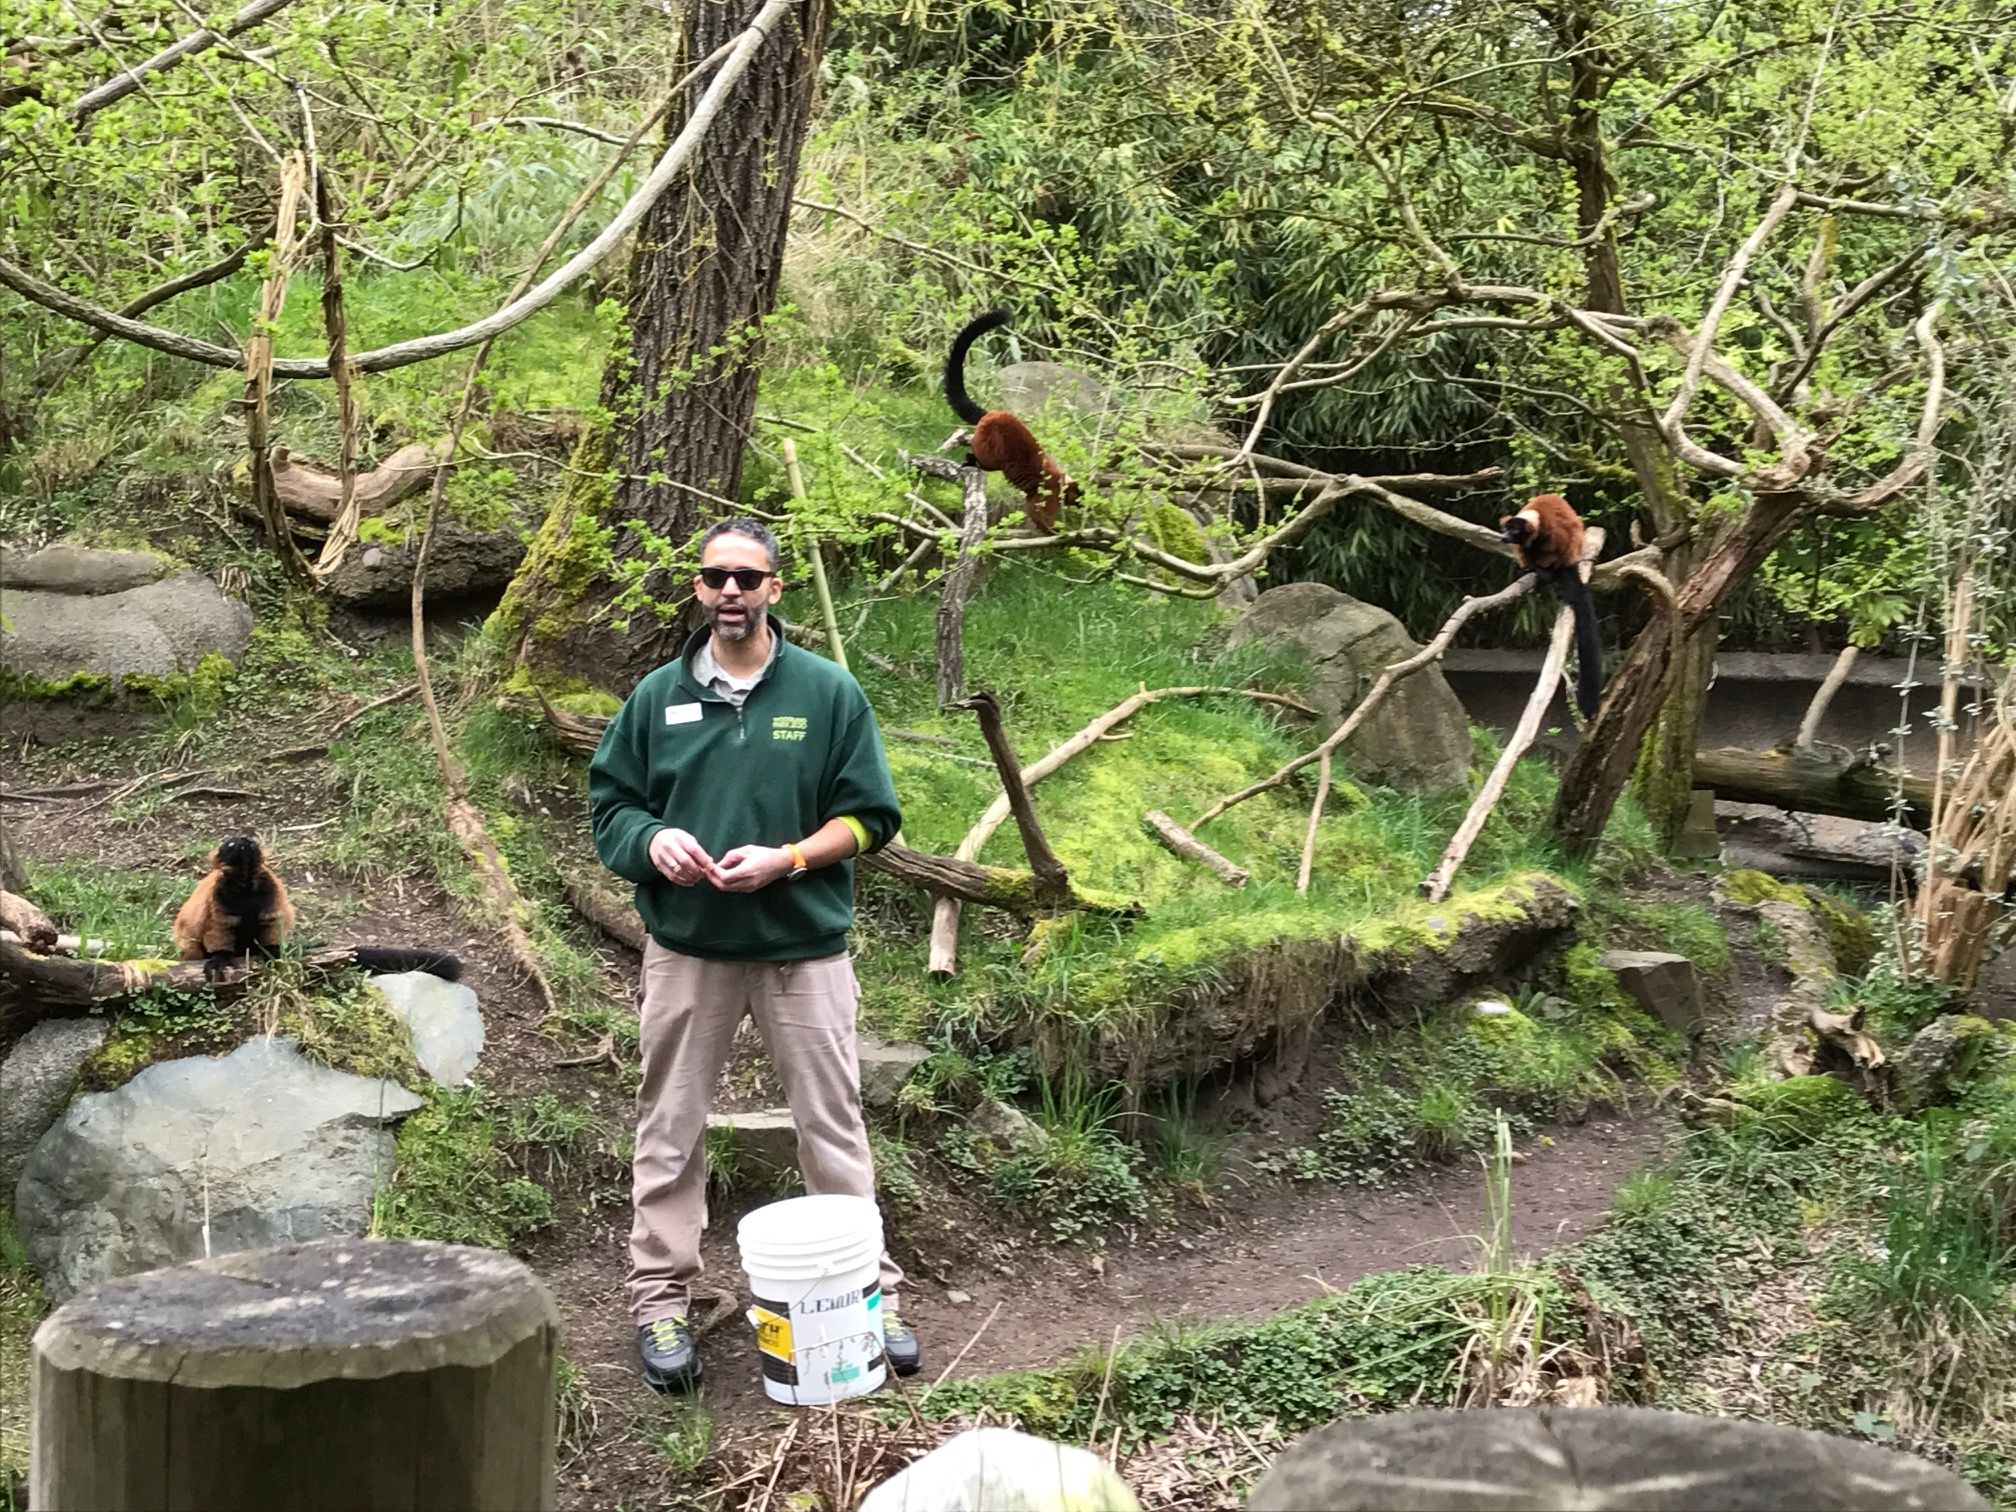 Nick Sutton Tropical Forest Specialist At Woodland Park Zoo Seattle Feeding A Family Of Lemurs Www Edenprojects Woodland Park Zoo Zoo Keeper Tropical Forest